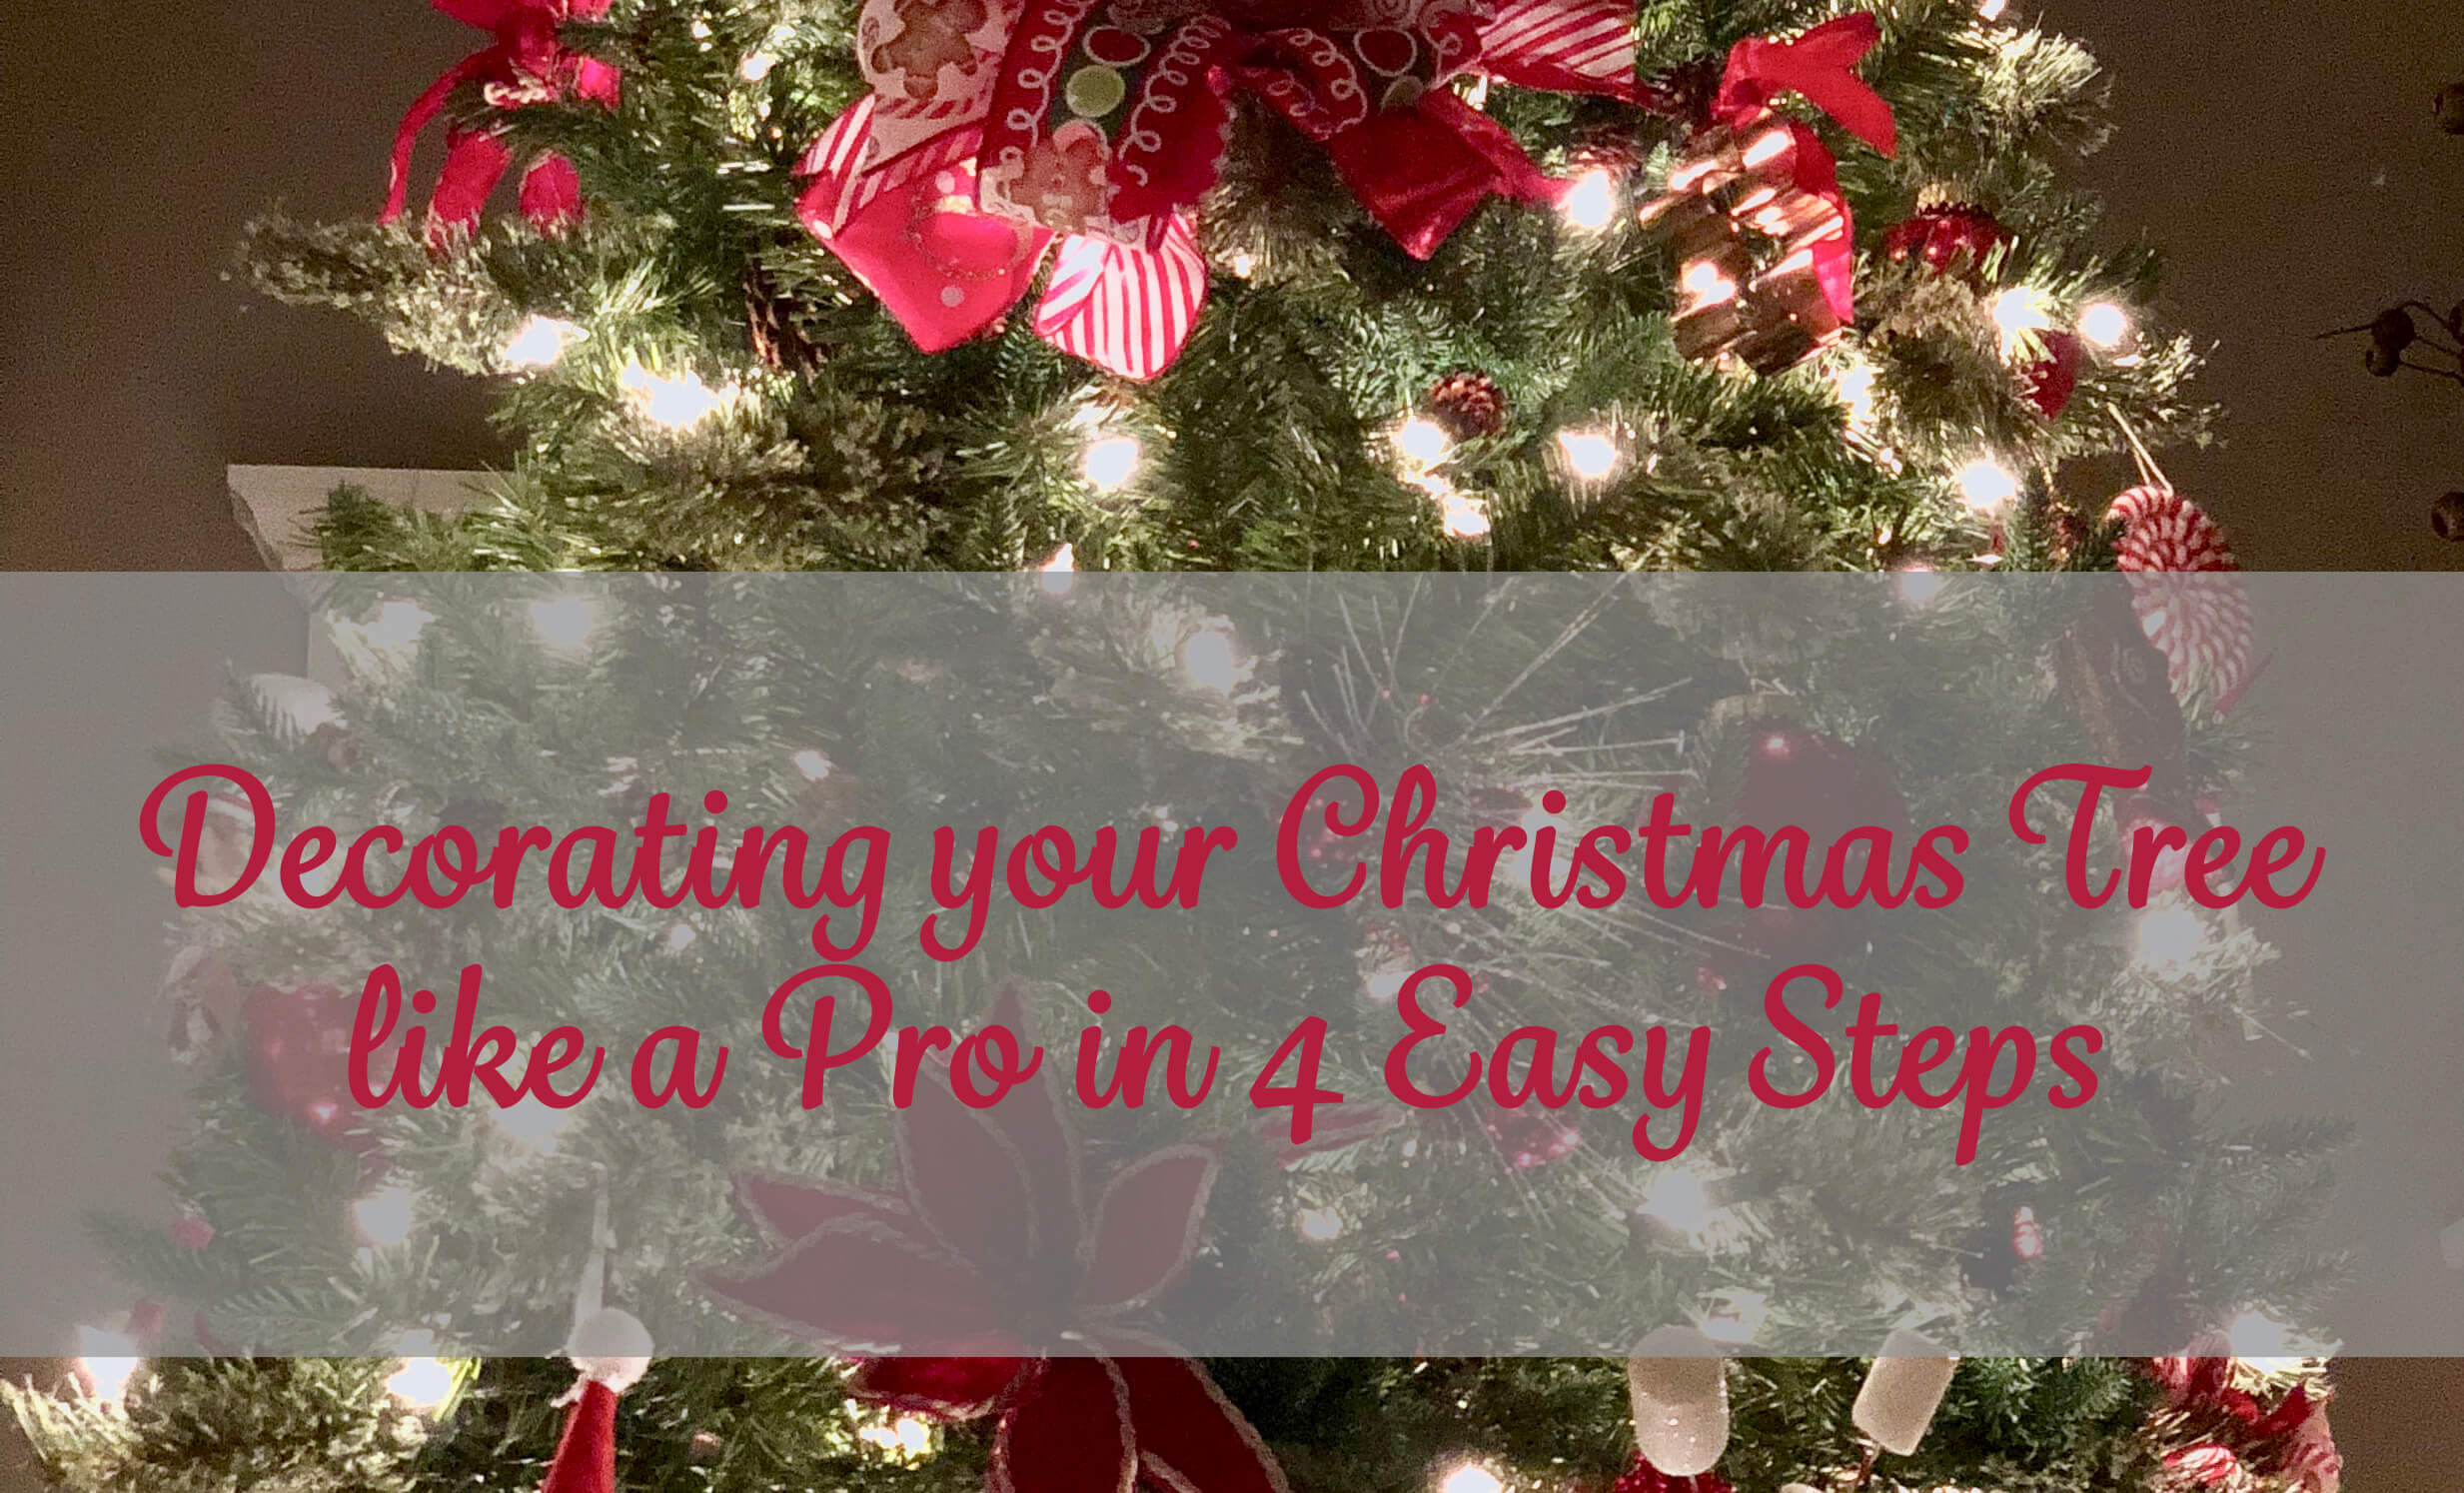 december 13 2017 by z25marketing no comments yet christmas tree christmas tree decorating - How To Decorate A Christmas Tree Like A Professional